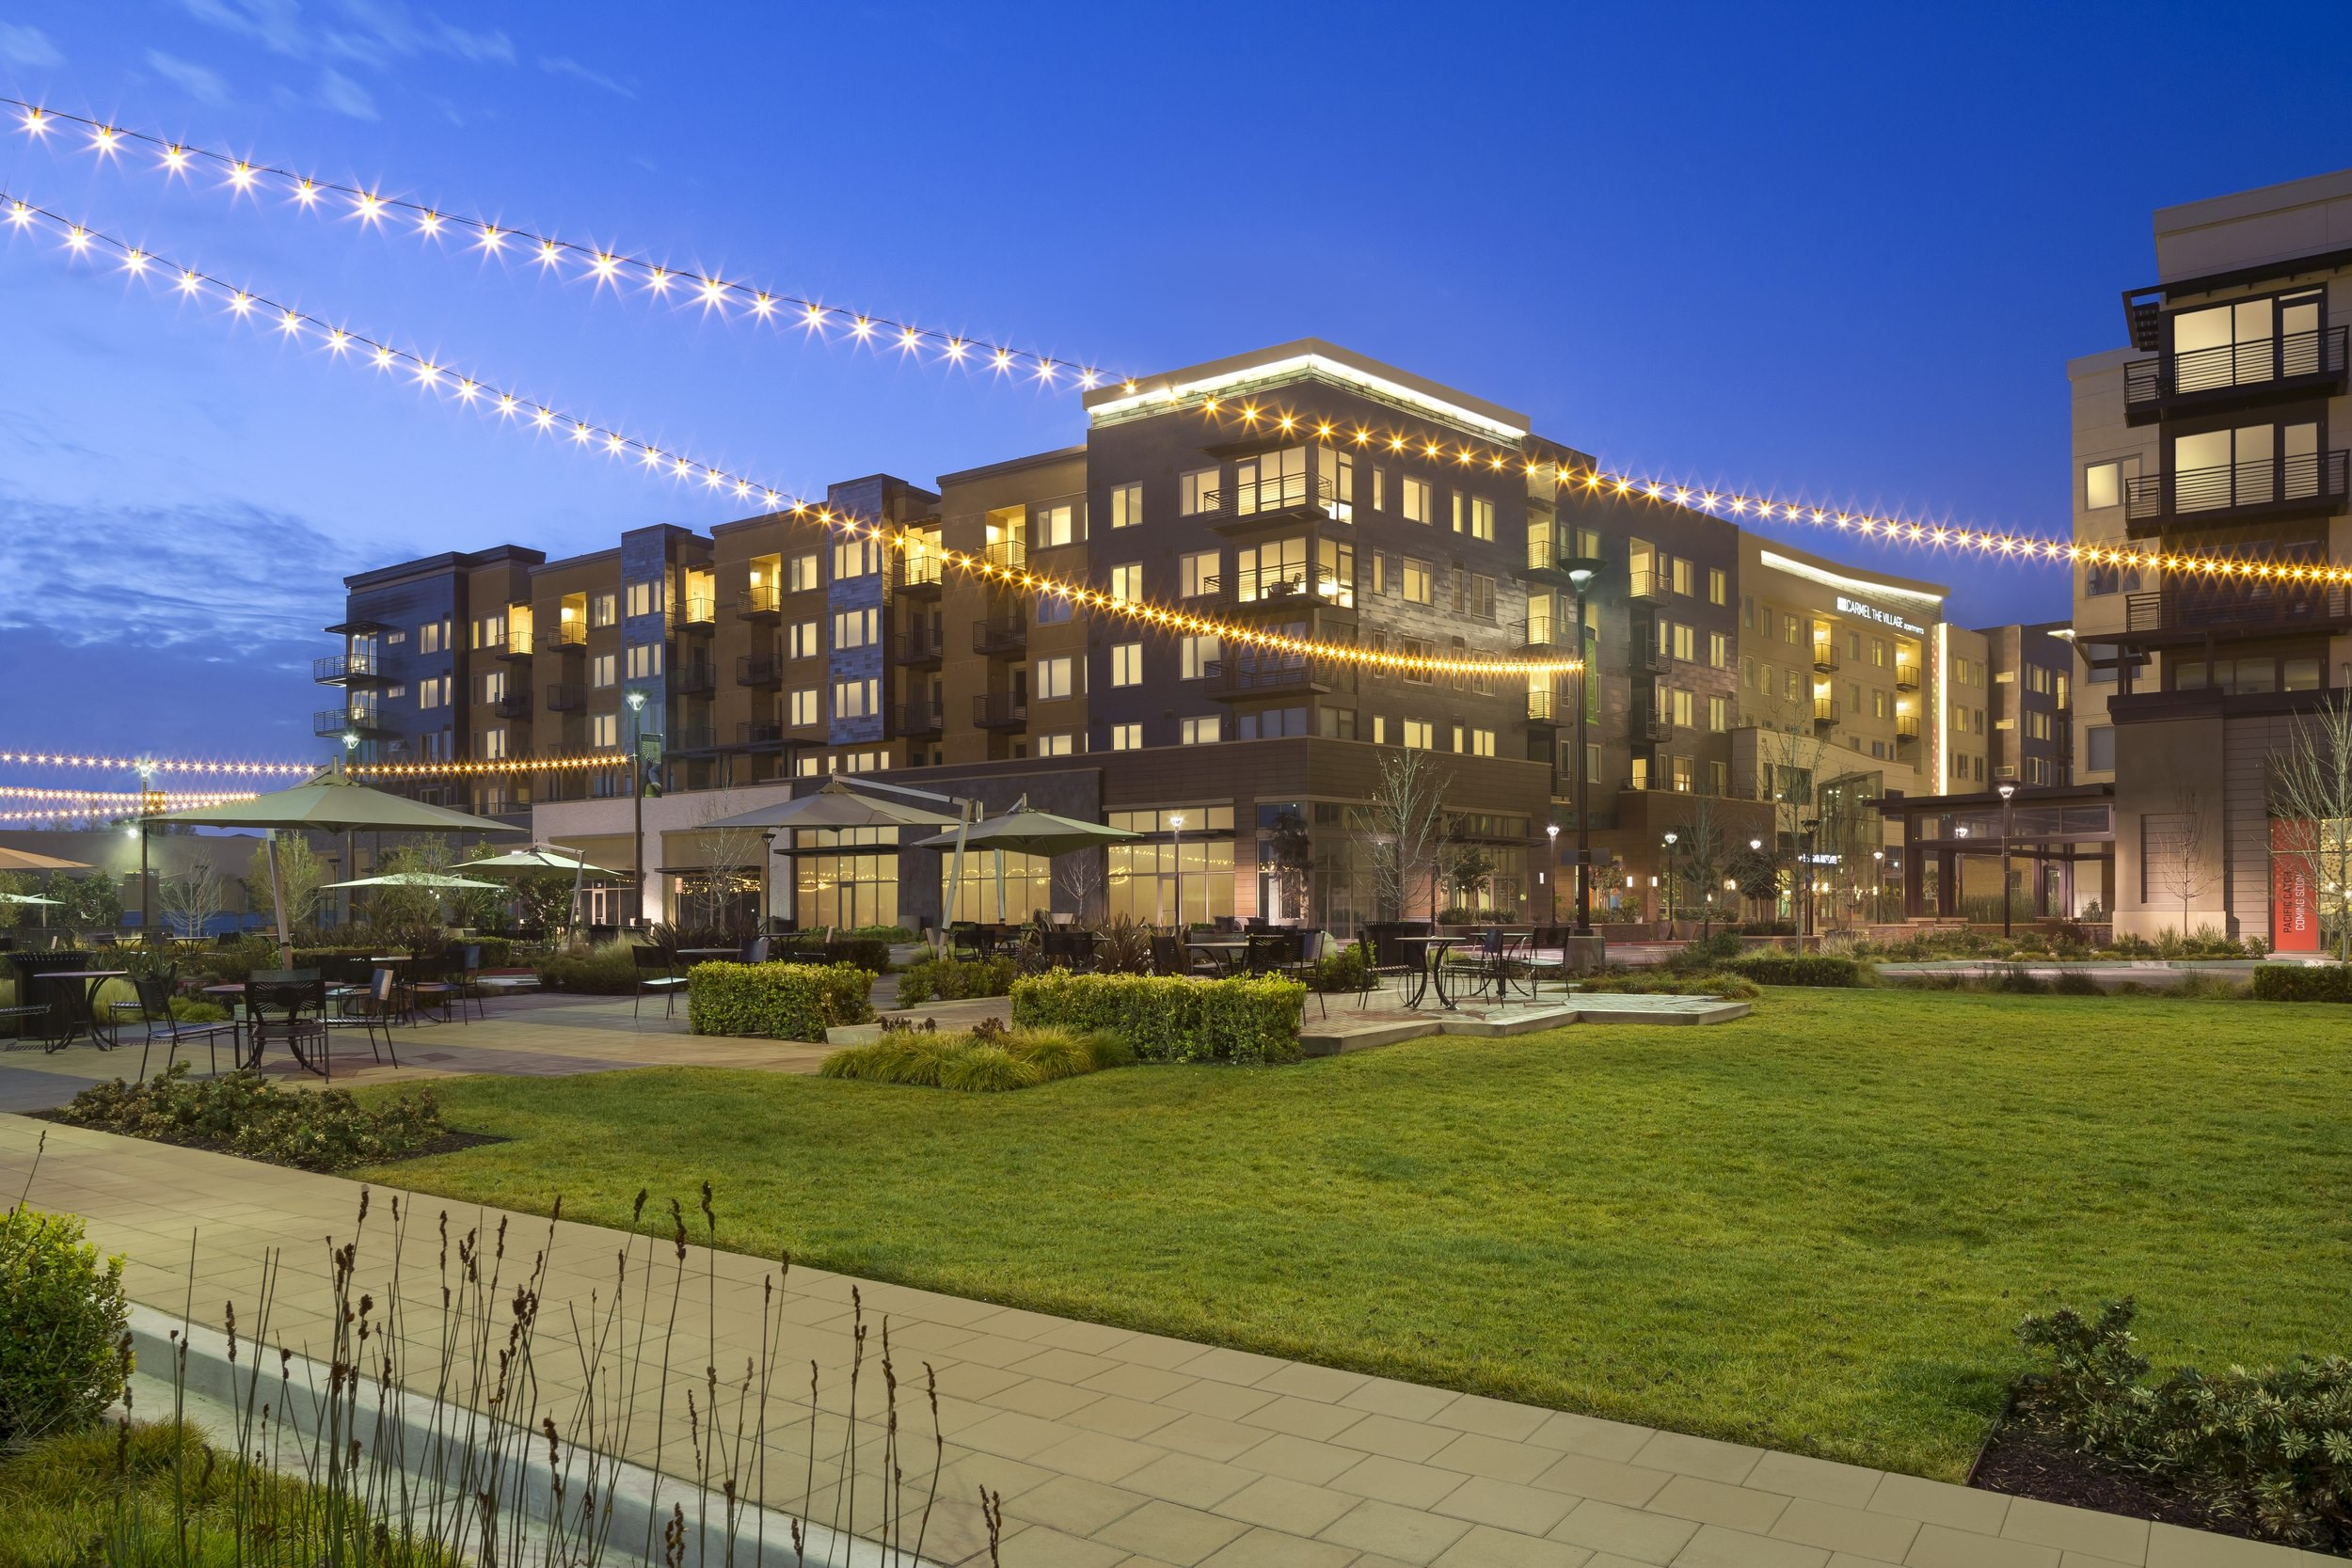 An outdoor patio and lawn full of grass in front of a large building with the night blue sky in the